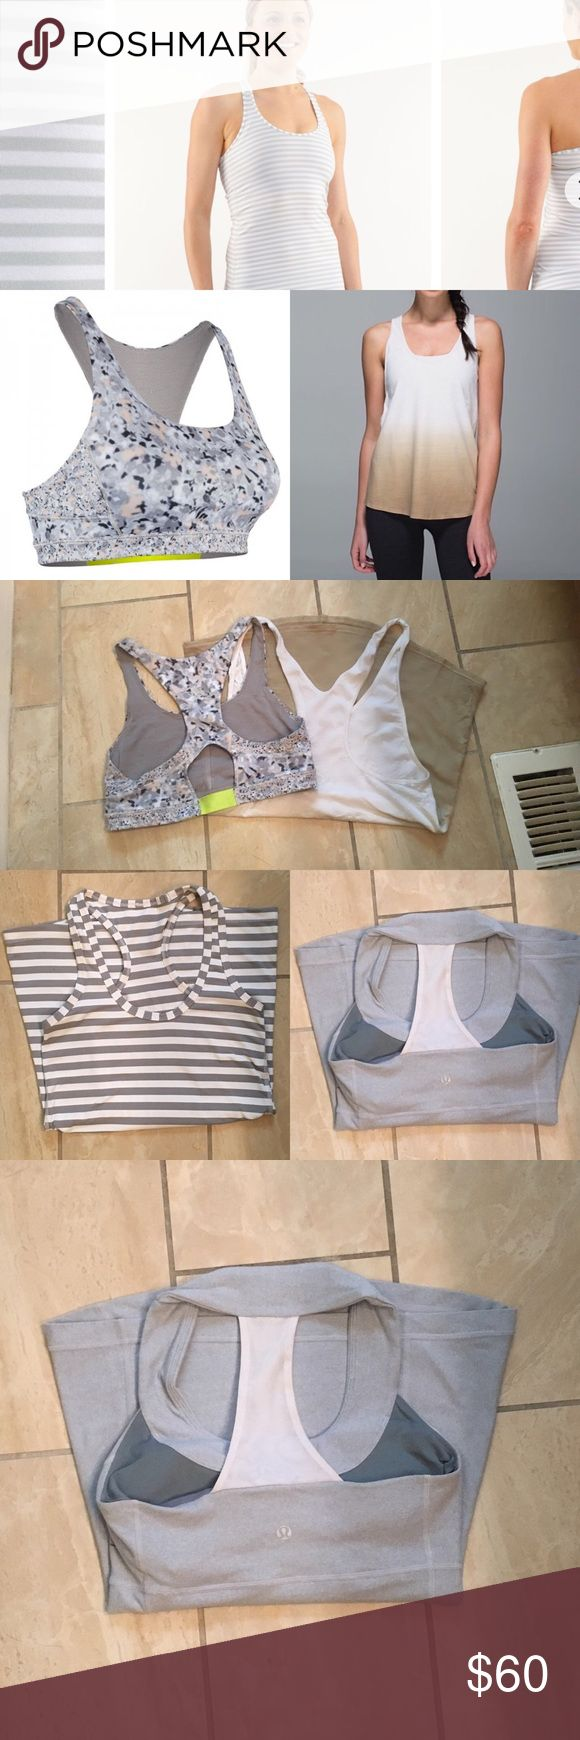 Lululemon 3 top 1 sports bra bundle✨ Striped top- practically new size 4 Worn X1, hombre top-perfect condition size 4, grey mesh racerback good condition and comes with inserts size 4, sports bra great condition size 2 lululemon athletica Tops Tank Tops